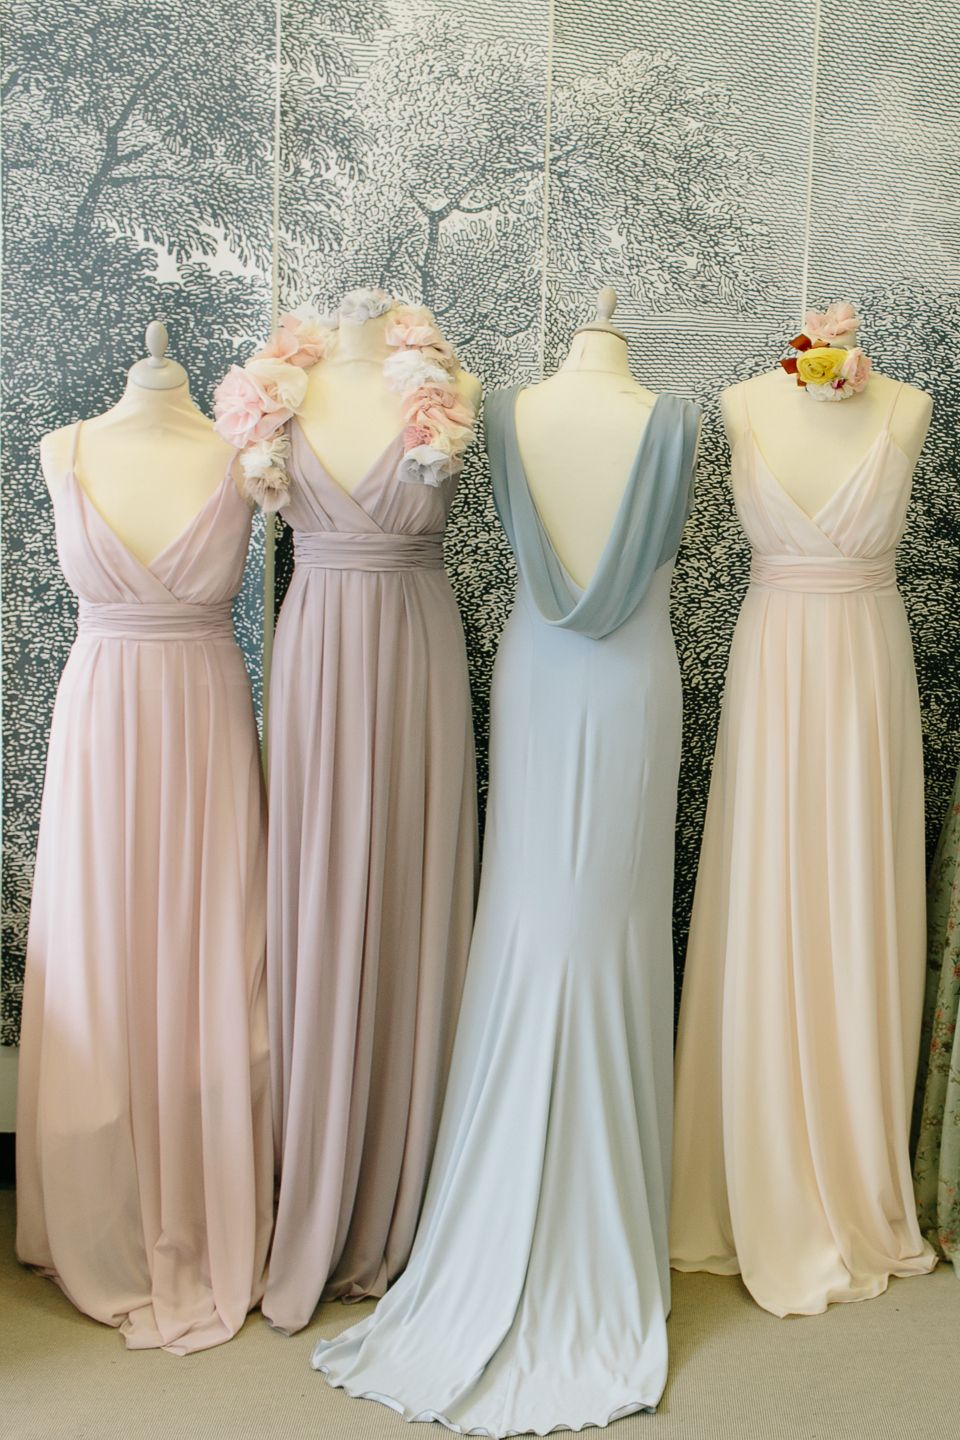 Maids to measure and ciat london pastel pretty bridesmaids maids to measure and ciat london pastel pretty bridesmaids dresses and matching nail varnish ombrellifo Choice Image